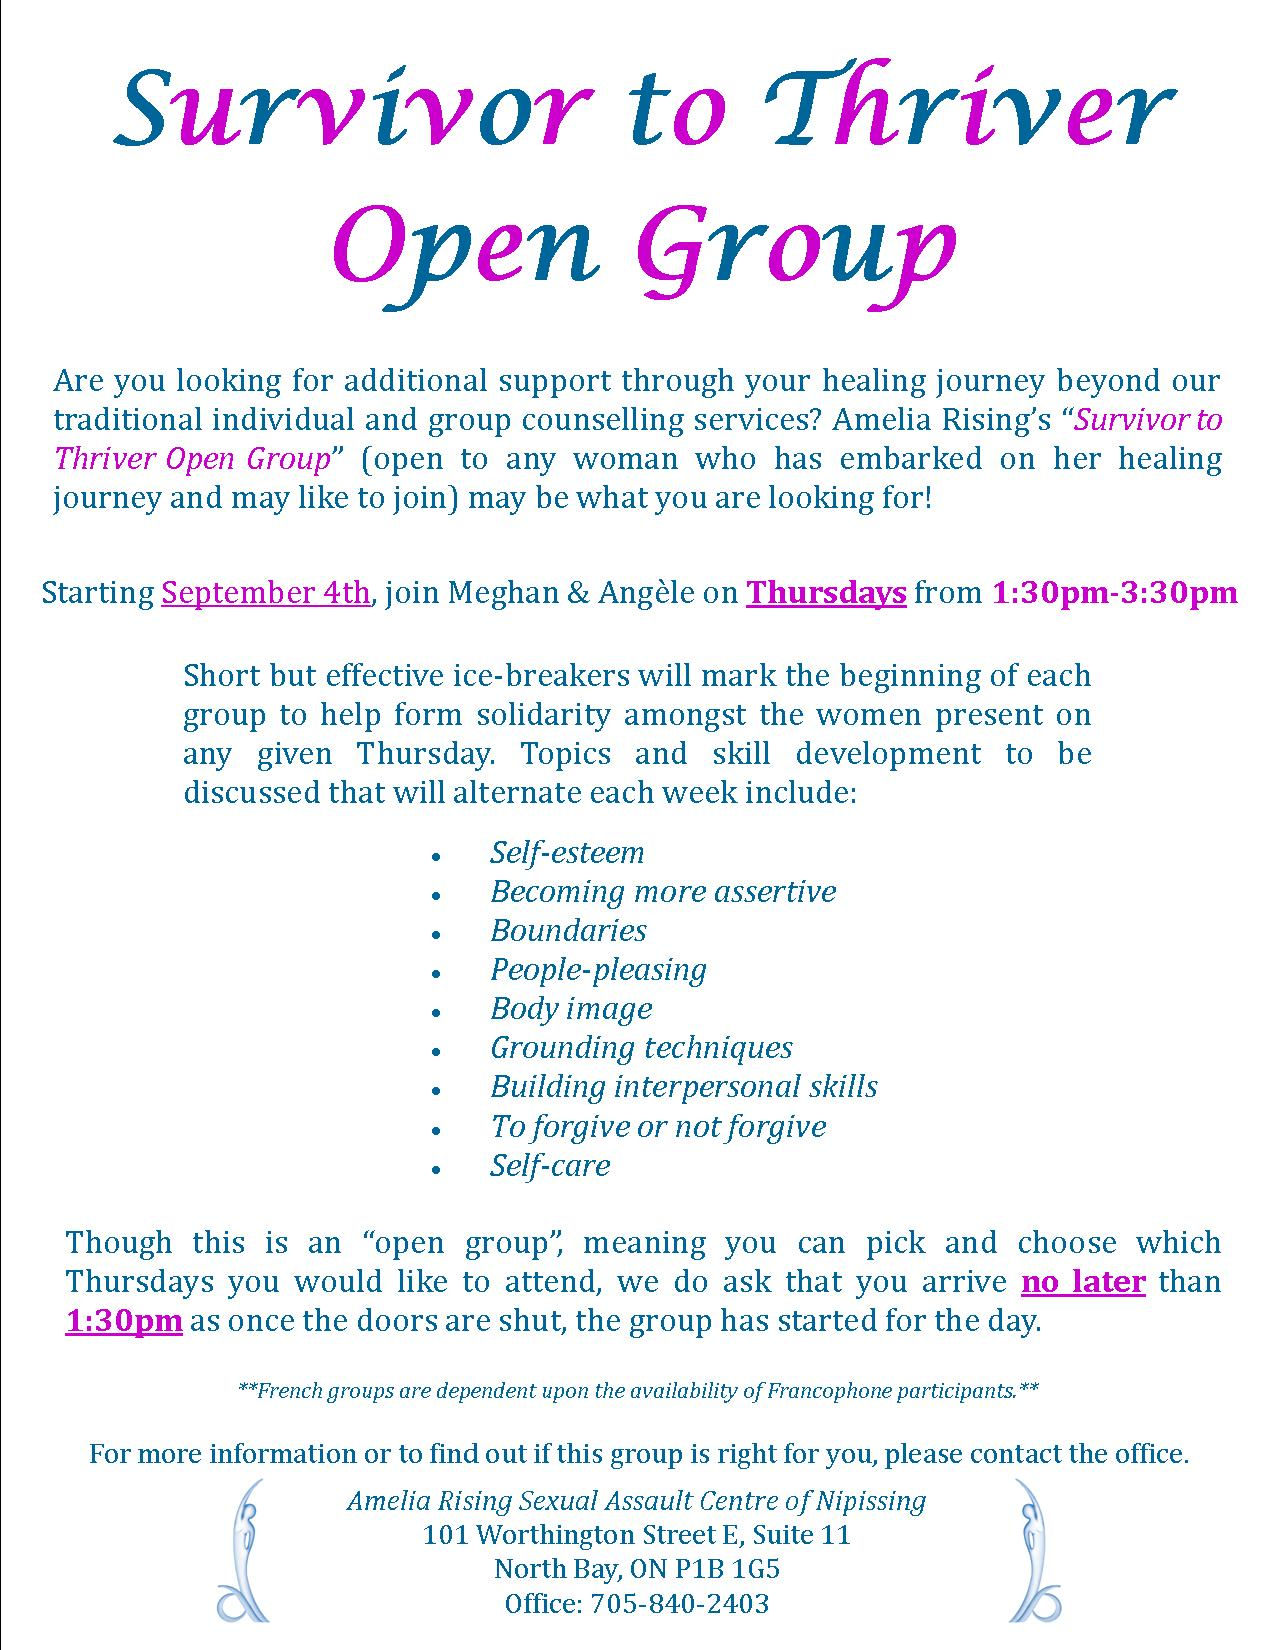 journey of life open group amelia rising click to enlarge